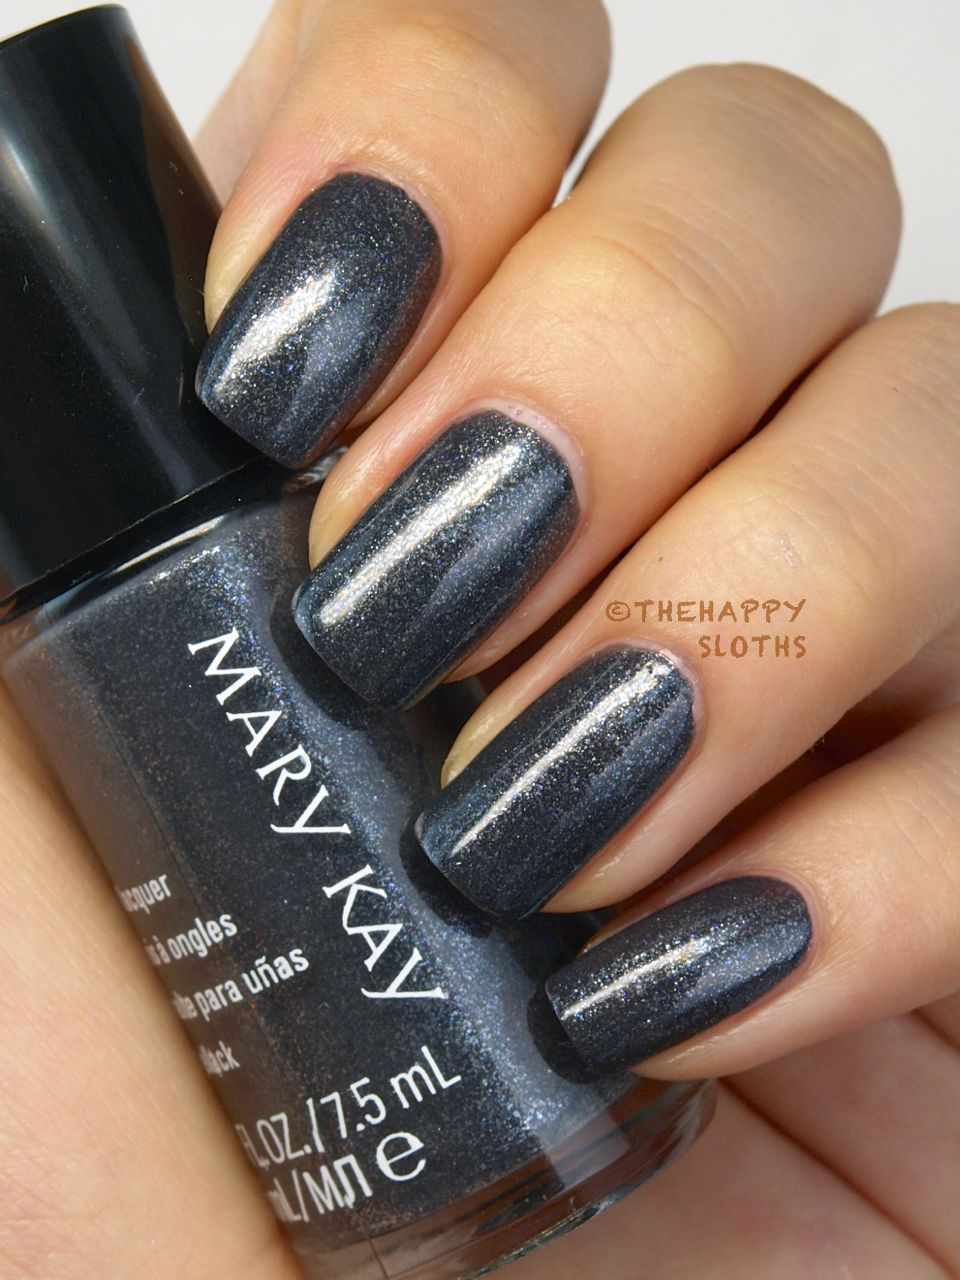 fall 2014 mary kay limited edition midnight jewels collection nail lacquer in night diamond review and swatches